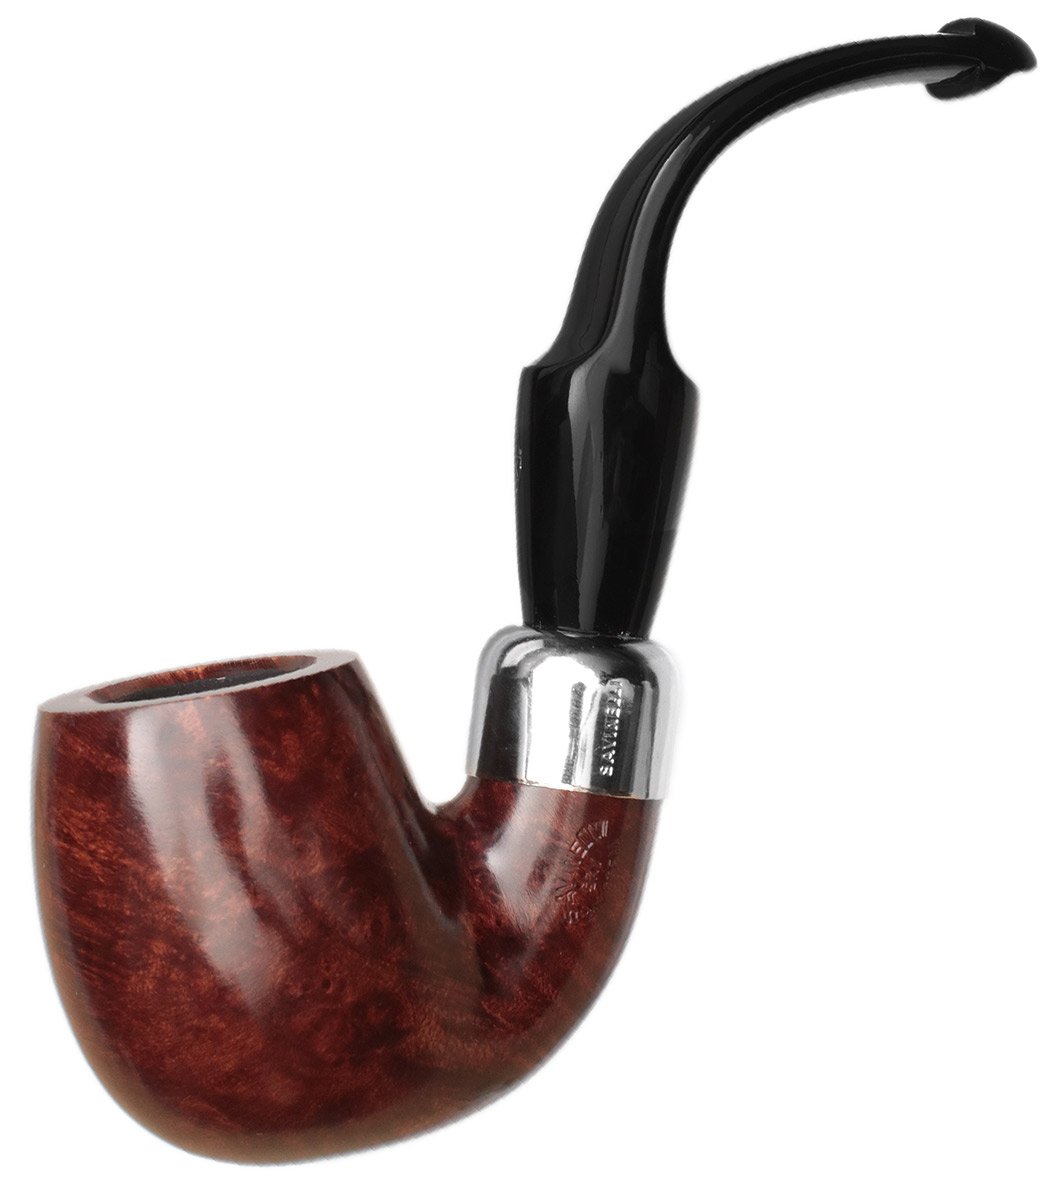 Savinelli Dry System Smooth (614) (6mm)